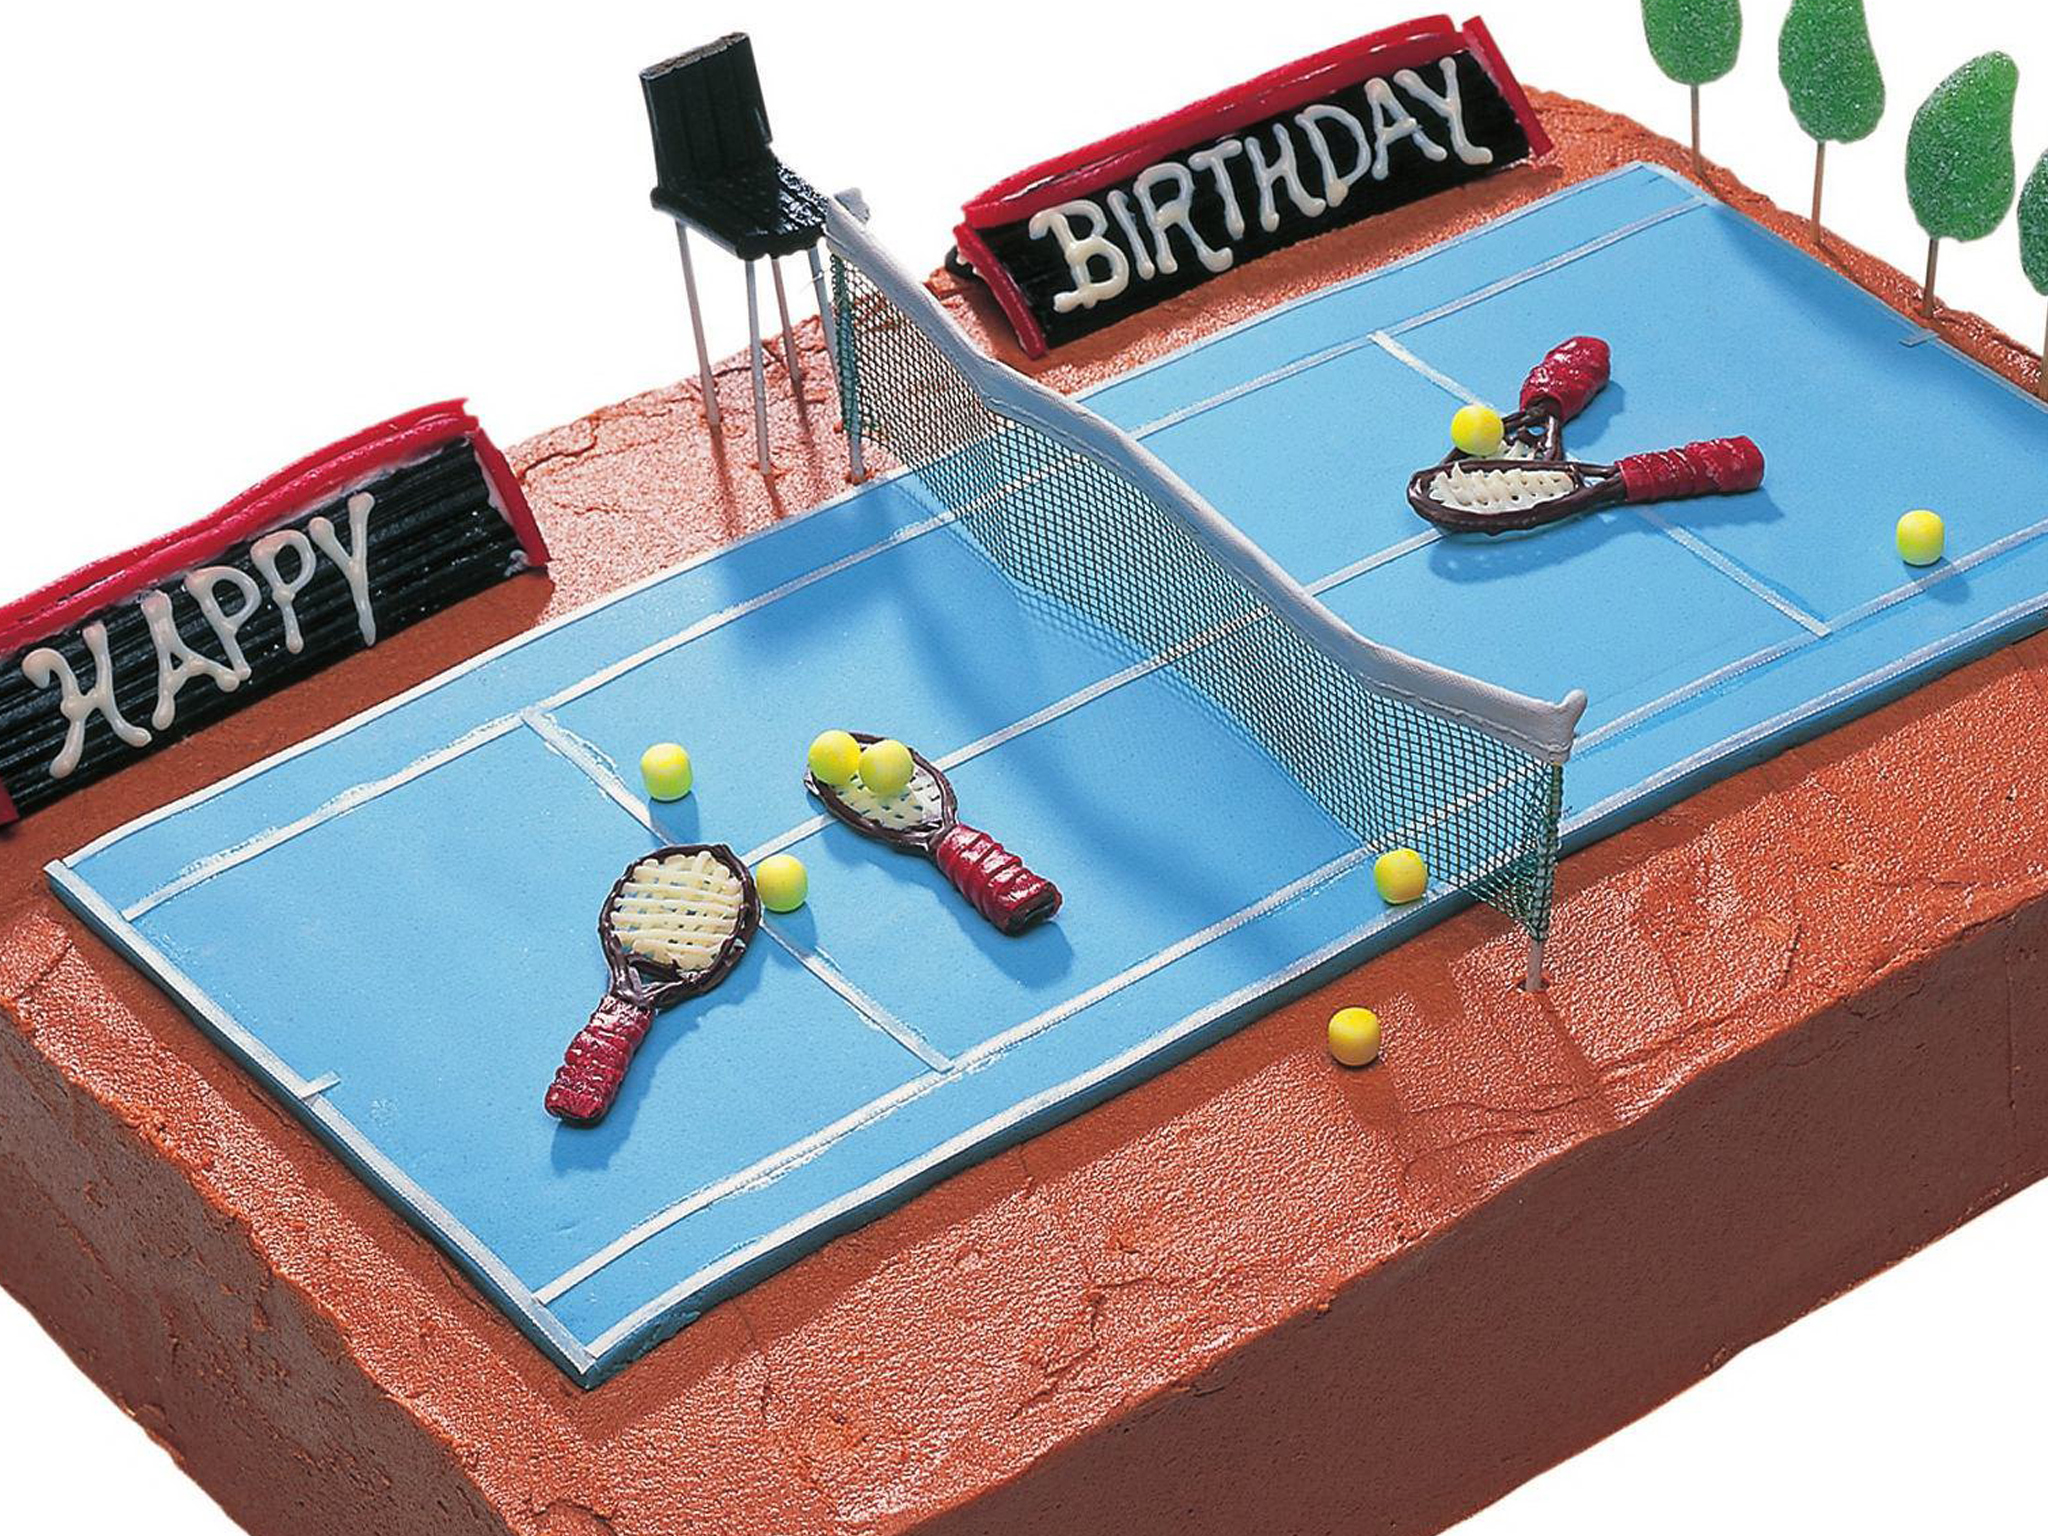 Tennis court birthday cake recipe Food To Love